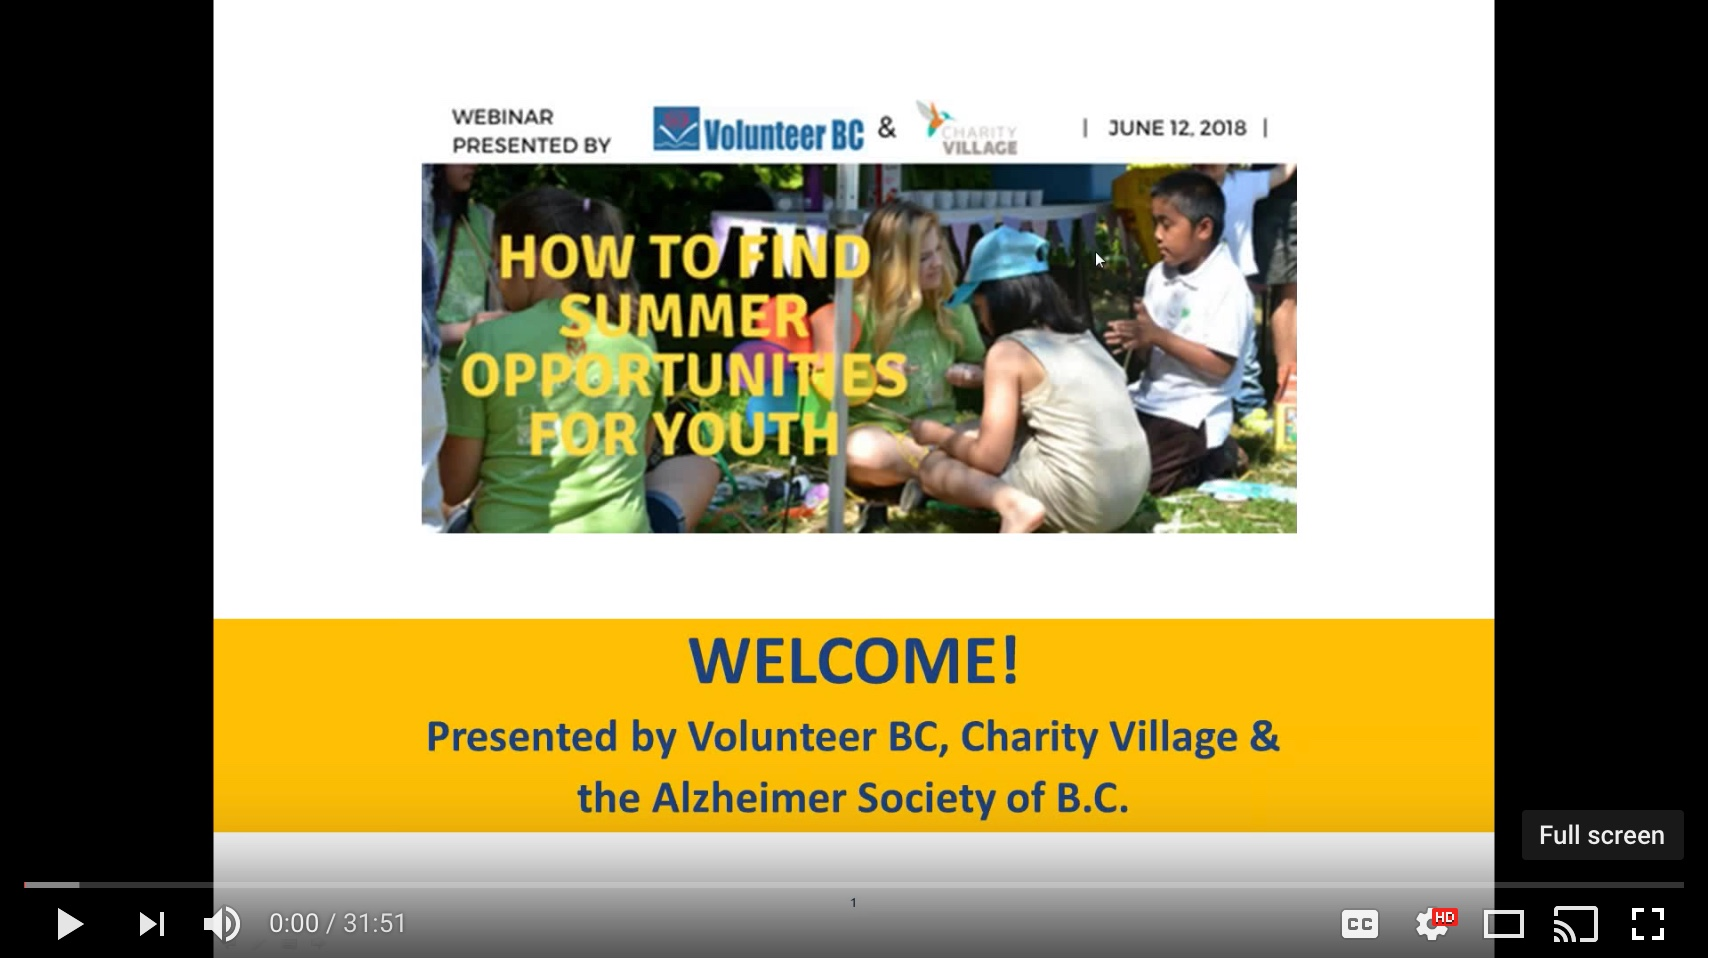 Youtube - How to Find Summer Volunteer Opportunities